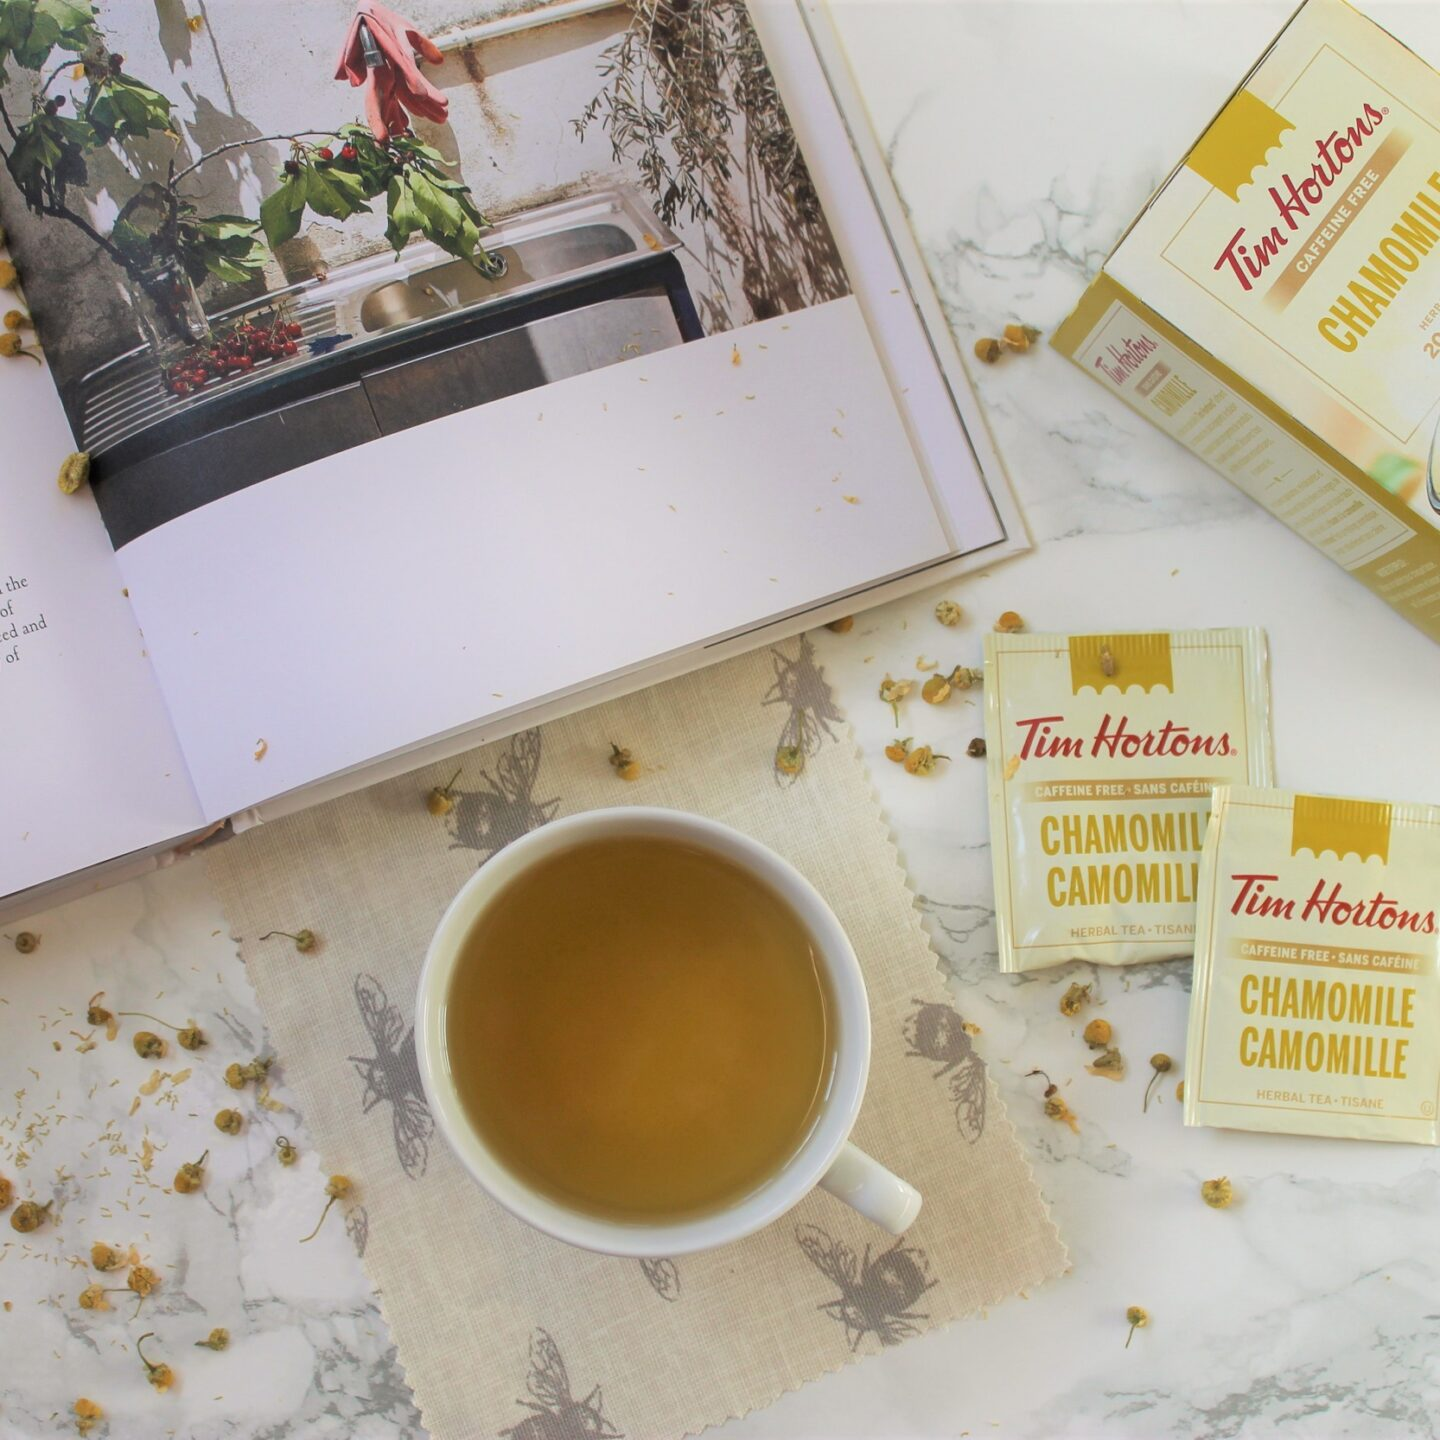 Tim Hortons Chamomile Herbal Tea Review